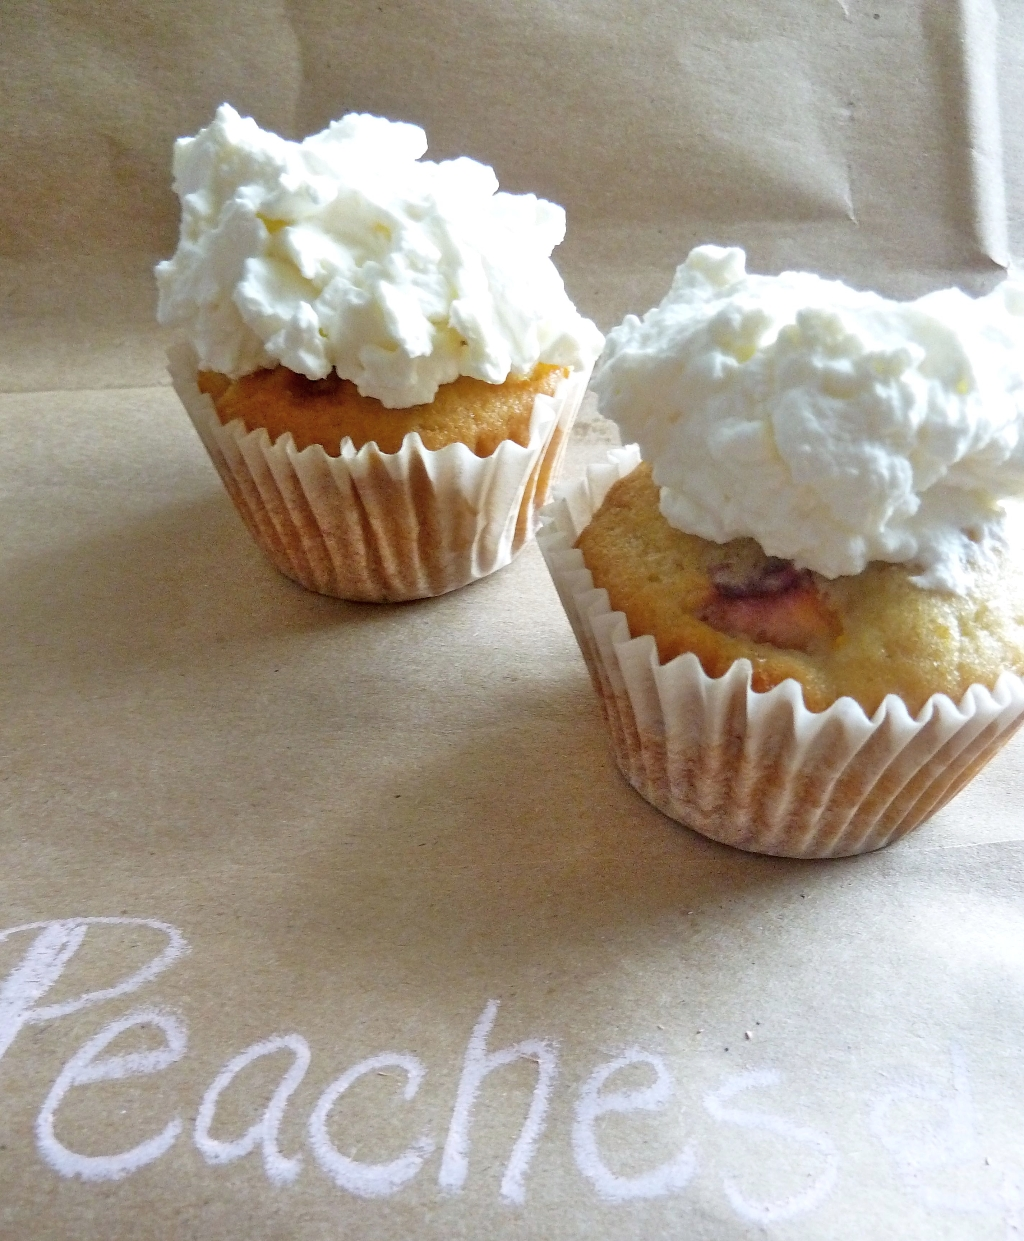 peaches and cream cupcakes with vanilla whipped cream frosting